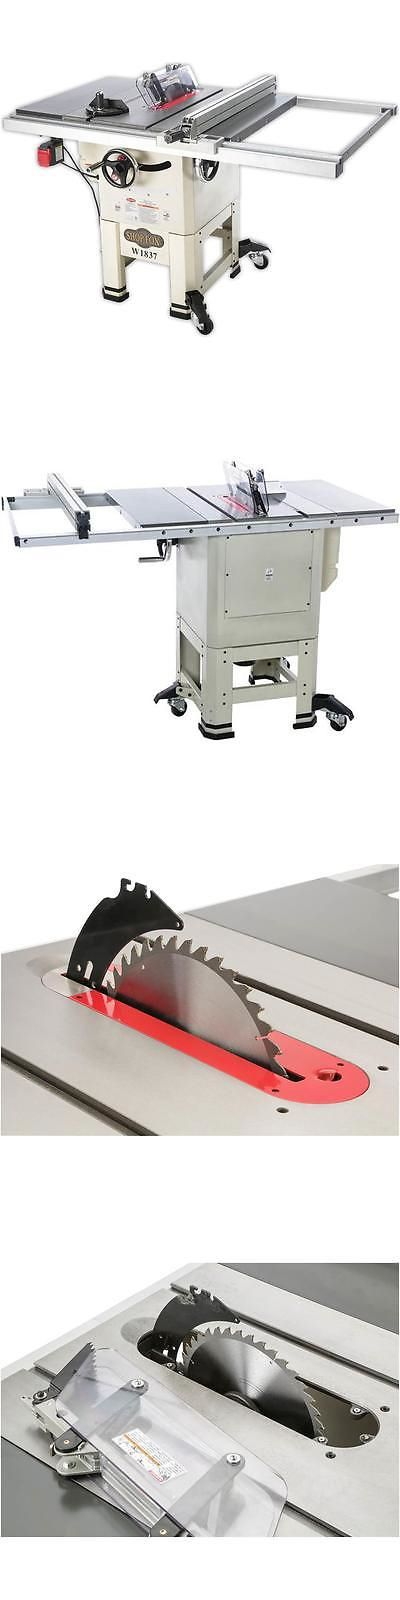 25 best ideas about hybrid table saw on pinterest for 10 hybrid table saw